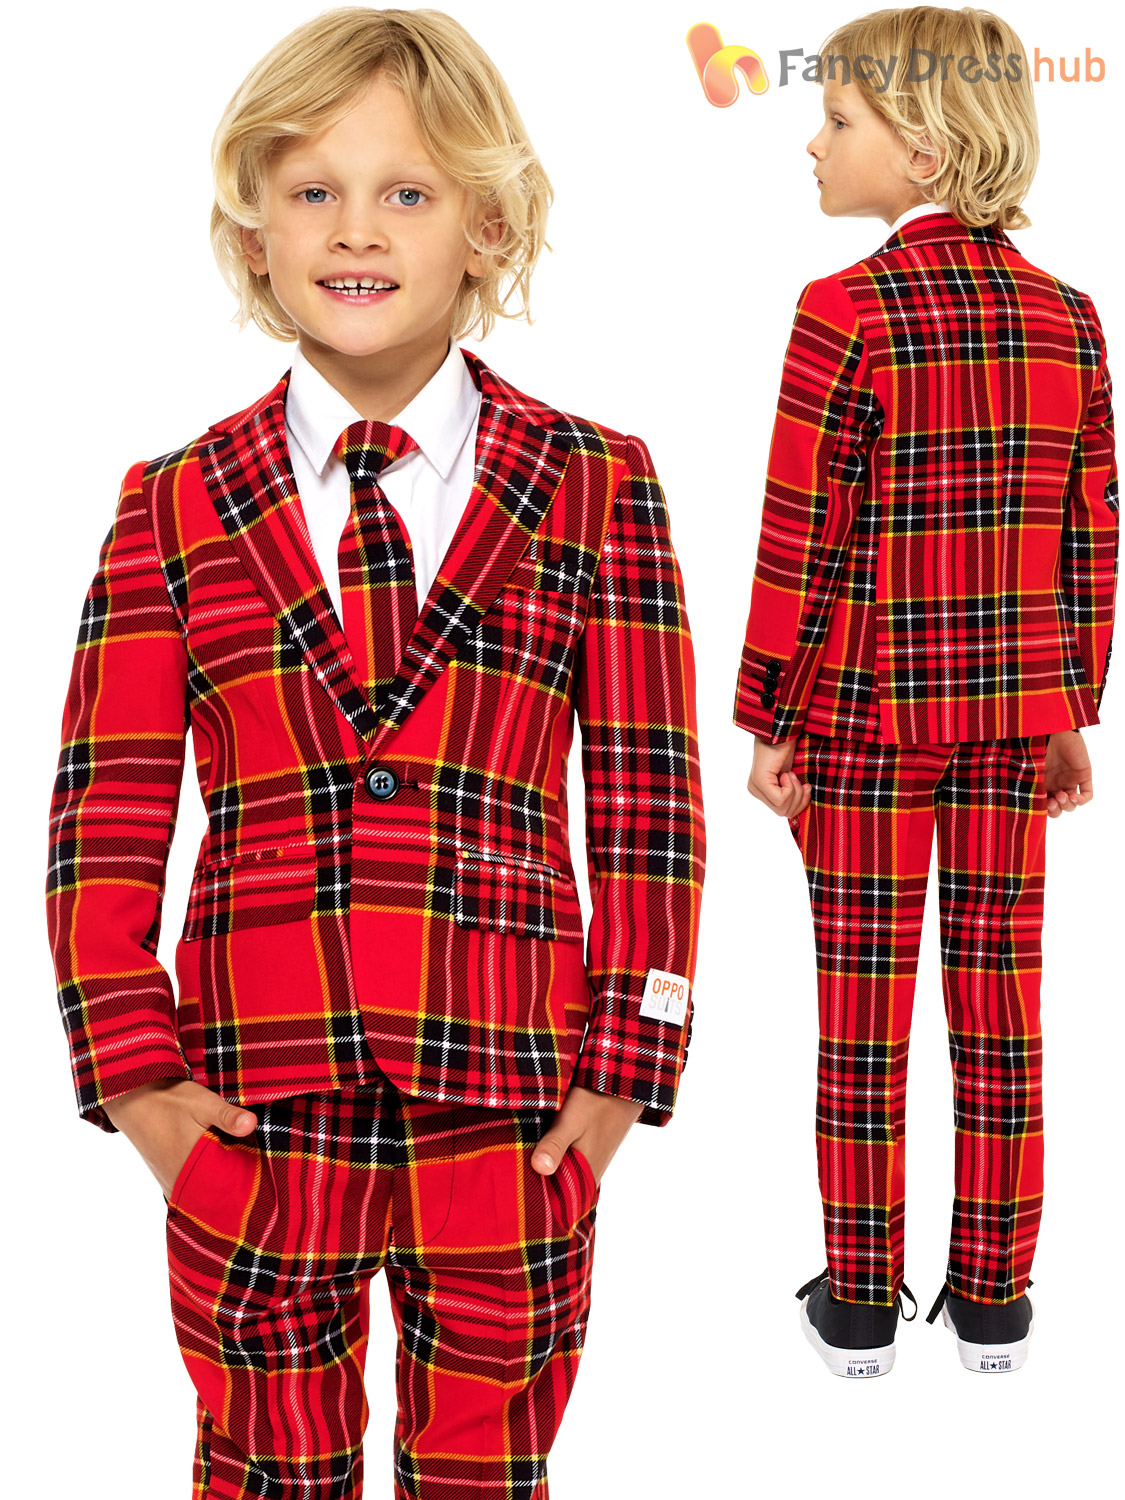 Childs Deluxe Christmas Opposuit Boys Xmas Festive Oppo Suit Fancy Dress Costume